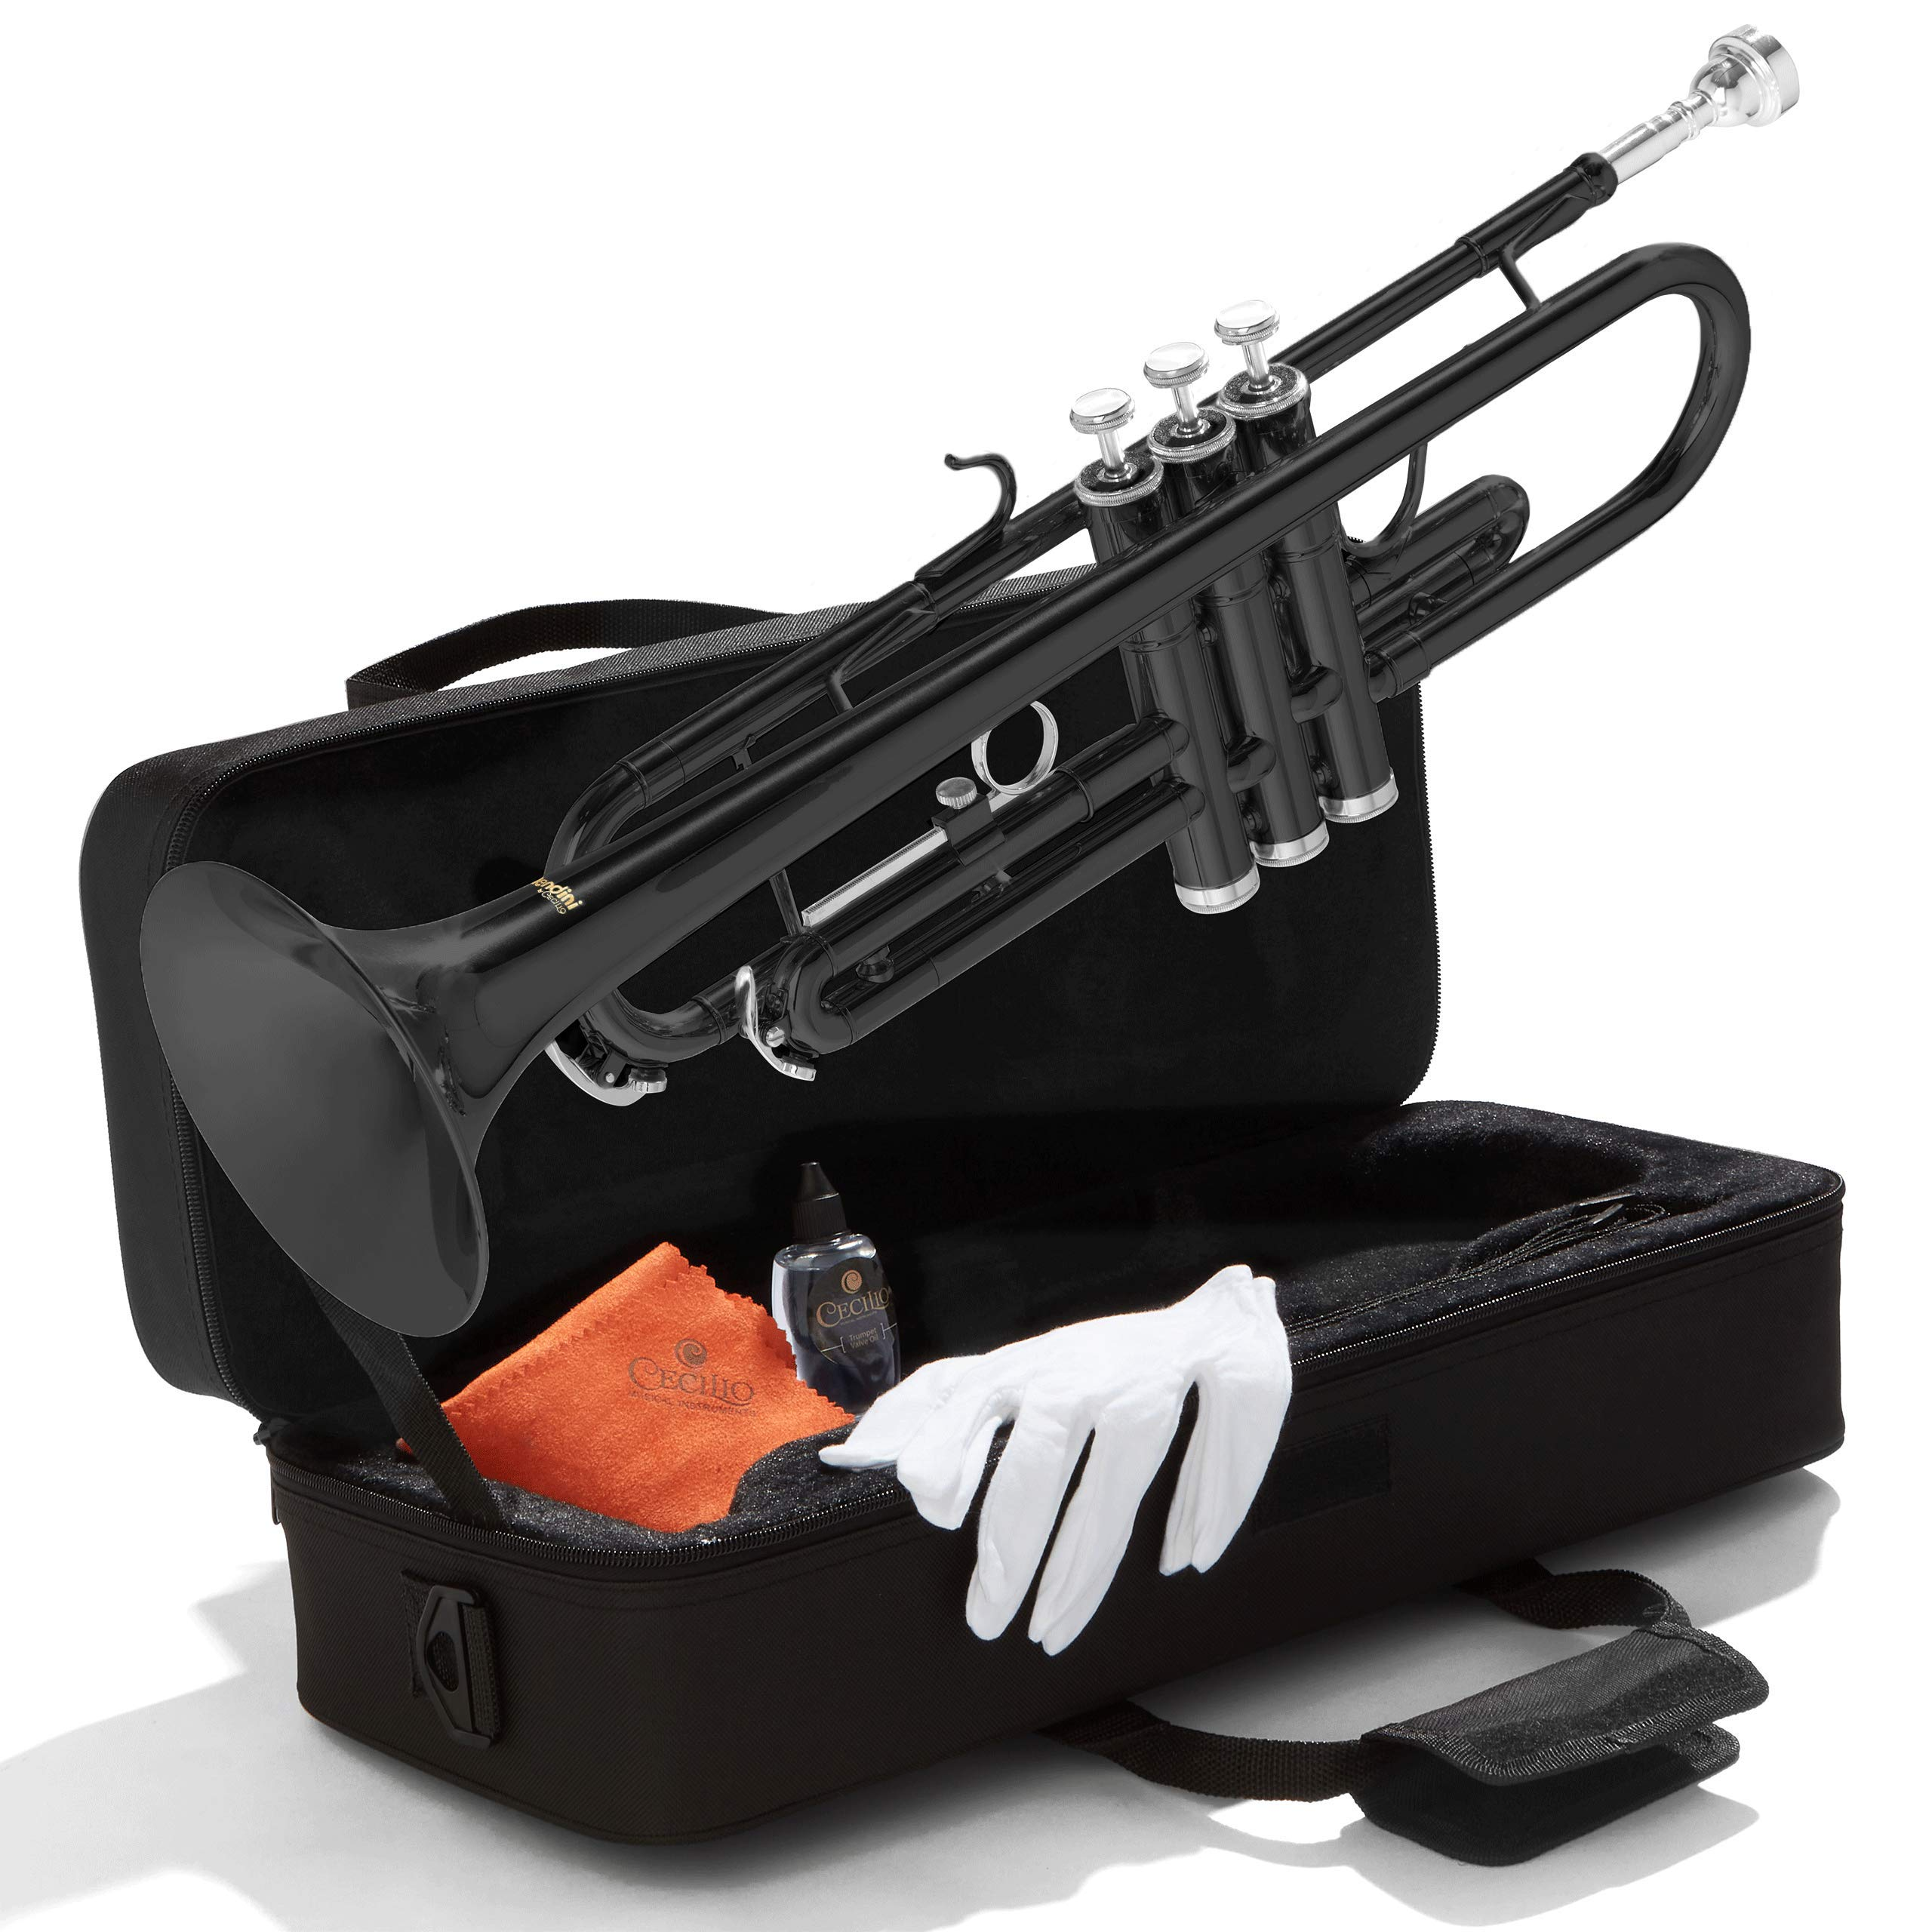 Mendini By Cecilio Bb Trumpet - Brass, Black Trumpets w/Instrument Case, Cloth, Oil, Gloves - Musical Instruments For Beginner or Experienced Kids, Adults